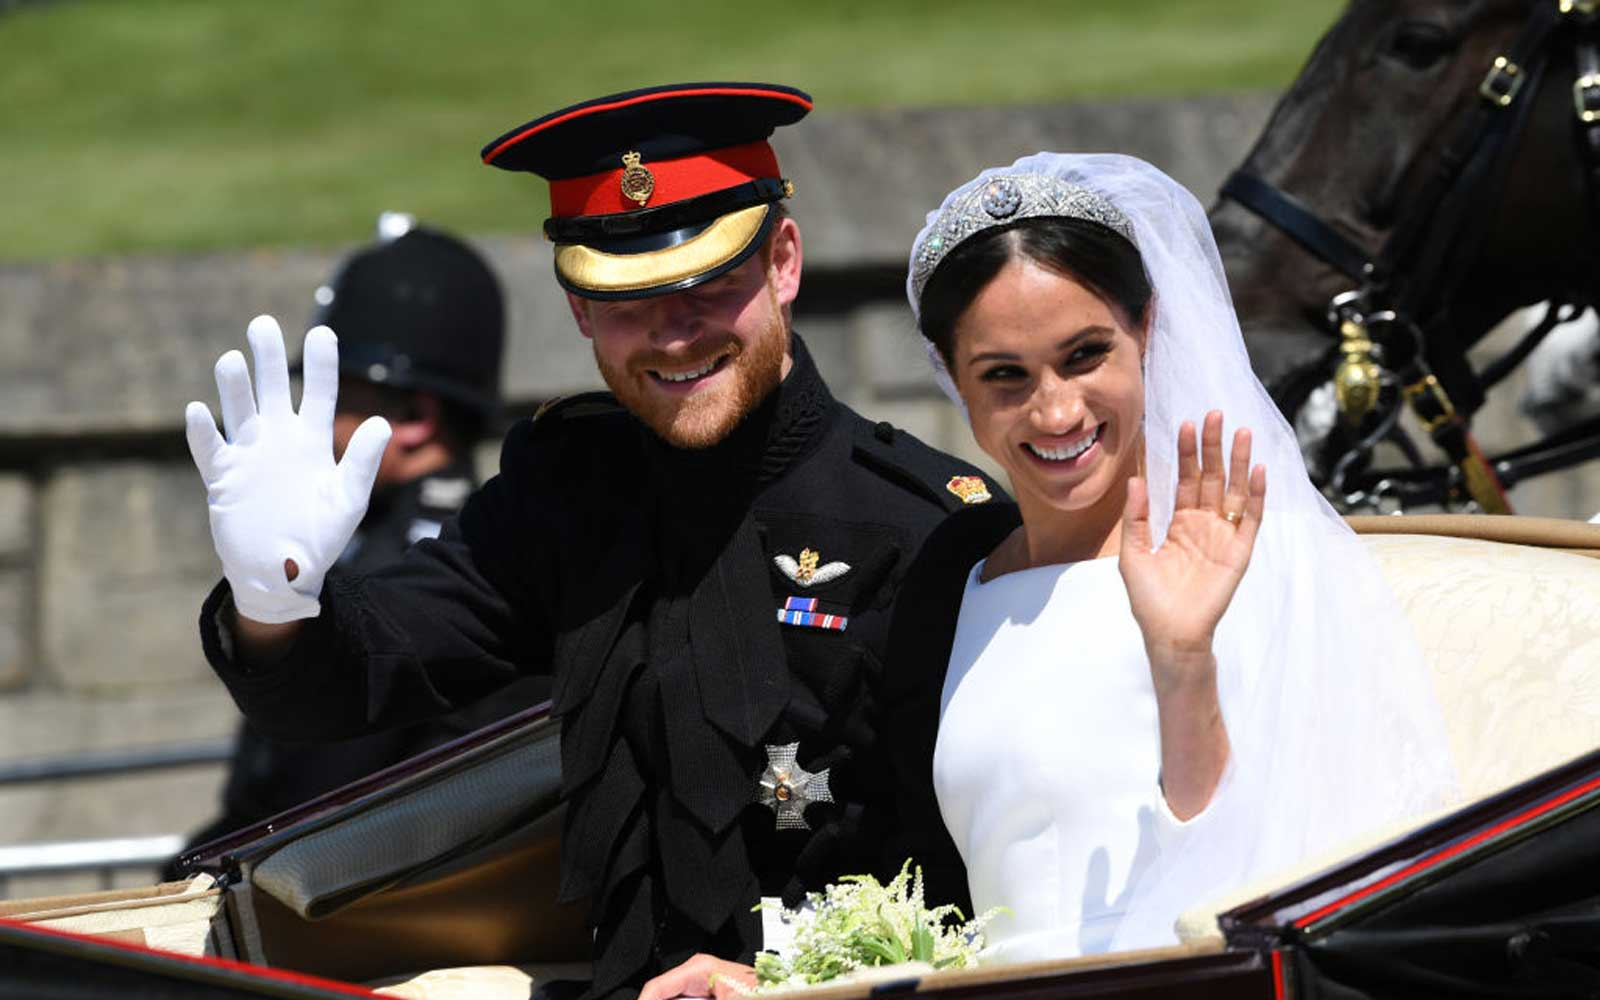 Meghan Markle's Dad Reveals How He Felt Watching the Royal Wedding on TV